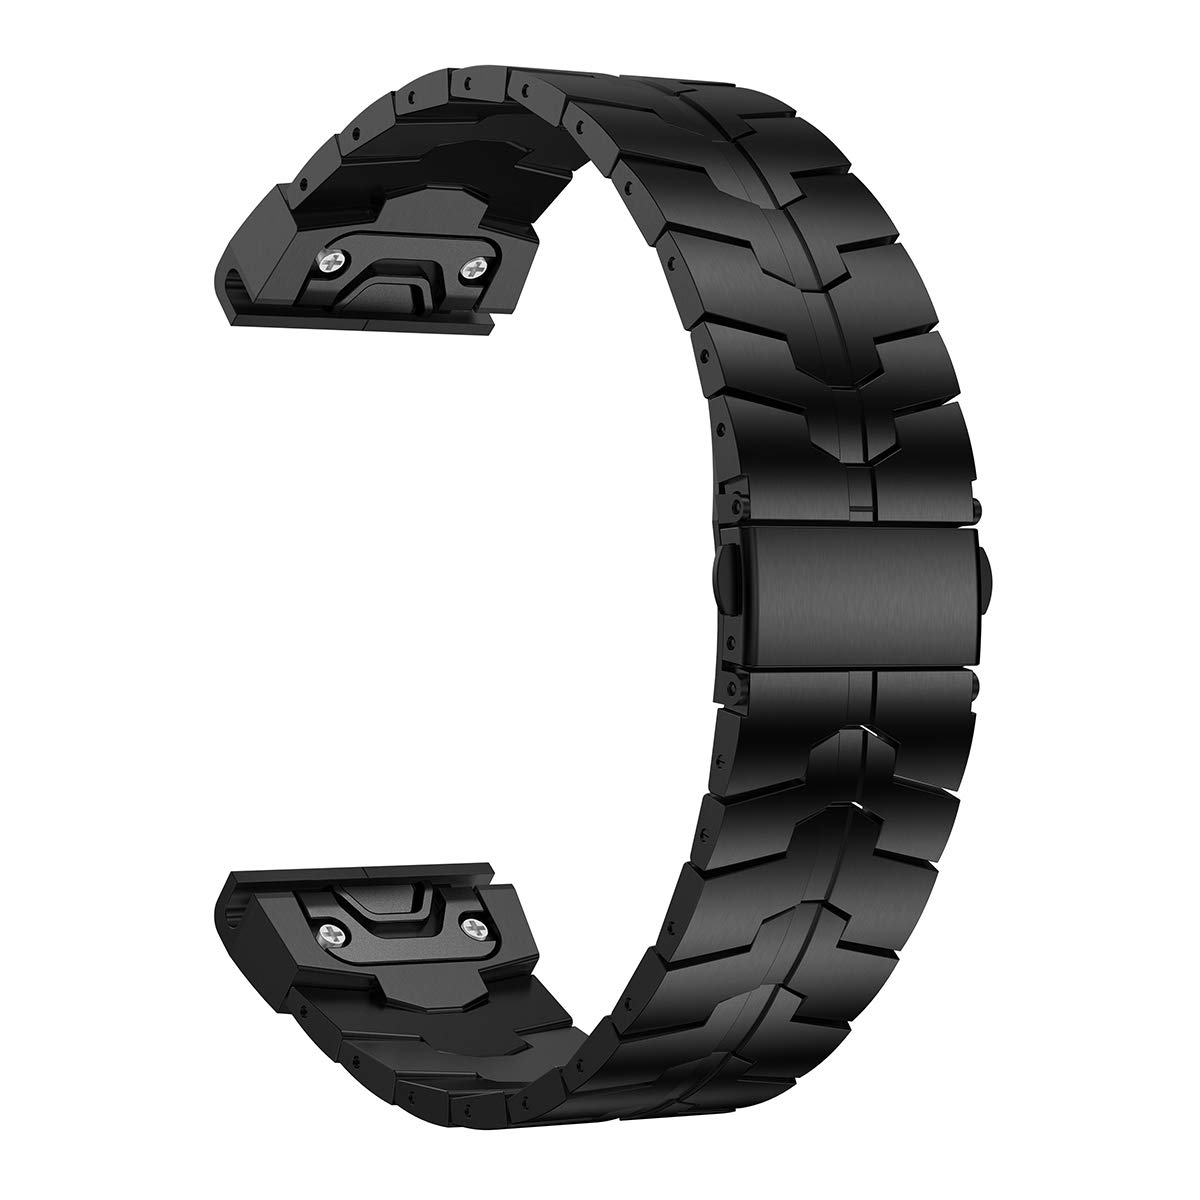 LDFAS Fenix 5/6 Band, 22mm Titanium Metal Quick Fit Watch Strap with Enhanced Durability Version Compatible for Garmin Instinct/Fenix 5 Plus/Fenix 6 Pro/Forerunner 935/945 Smartwatch, DLC- Black by LDFAS